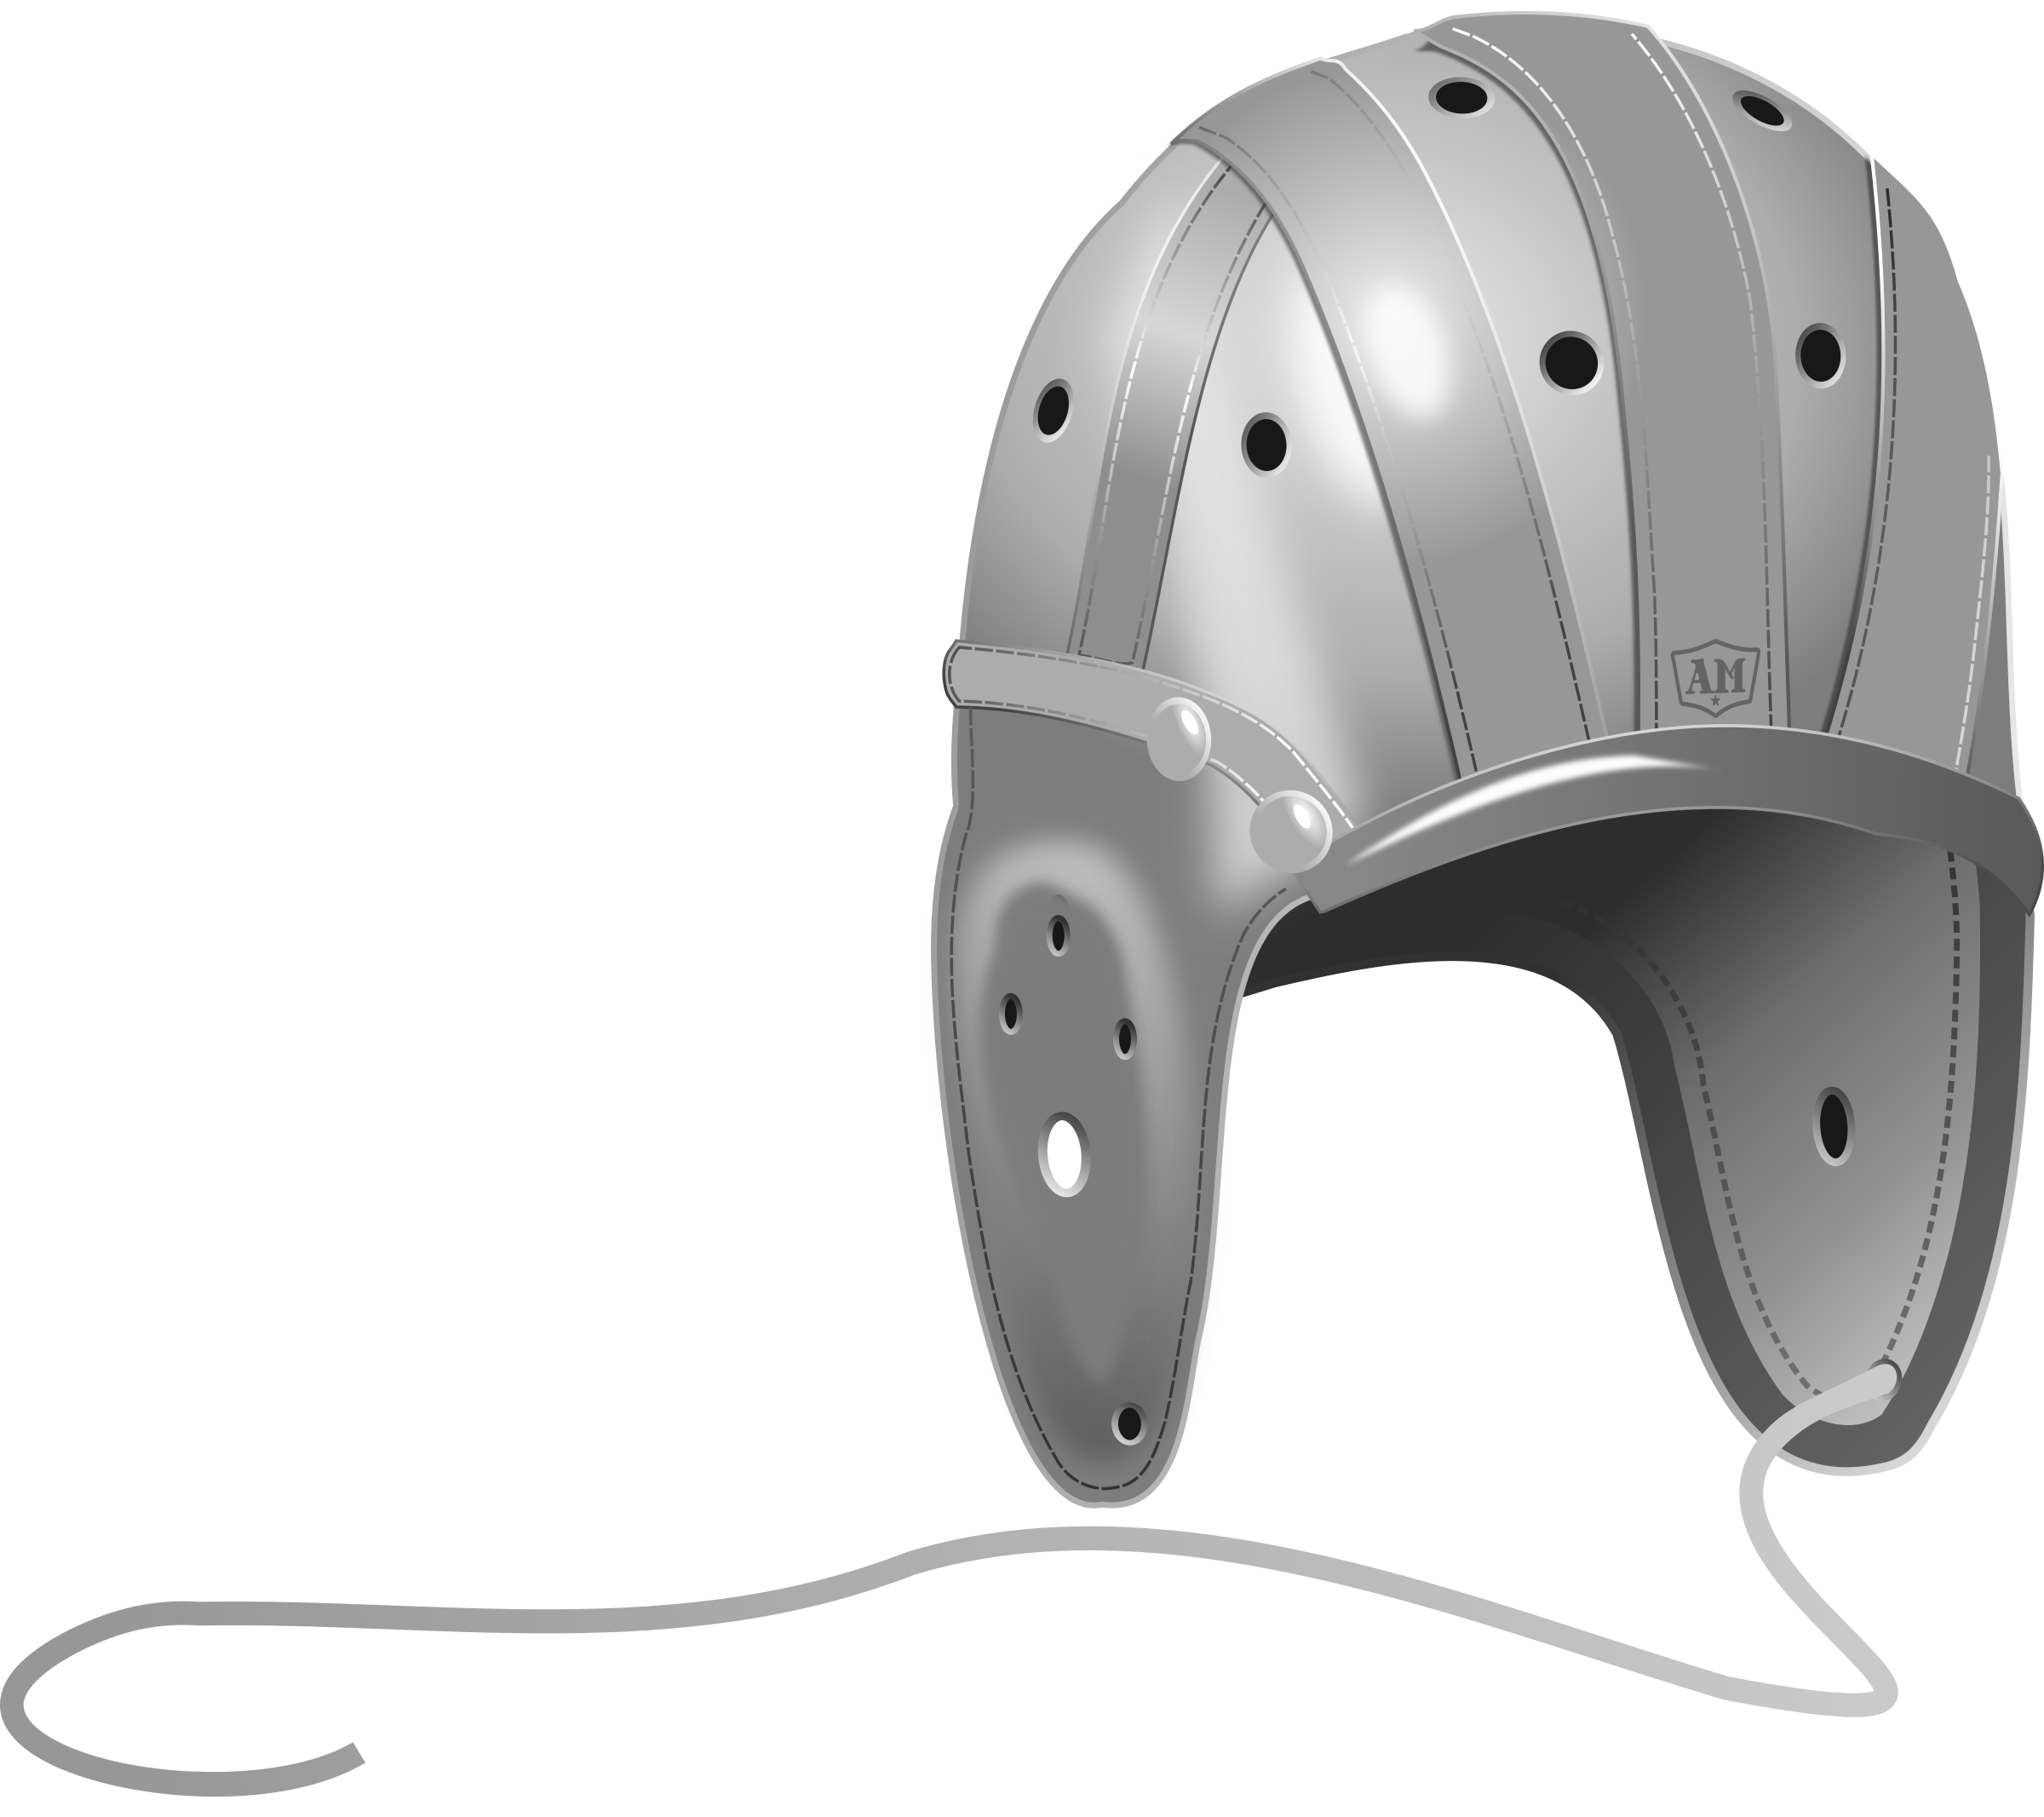 Clipart - 1940's Leather Football Helmet image download